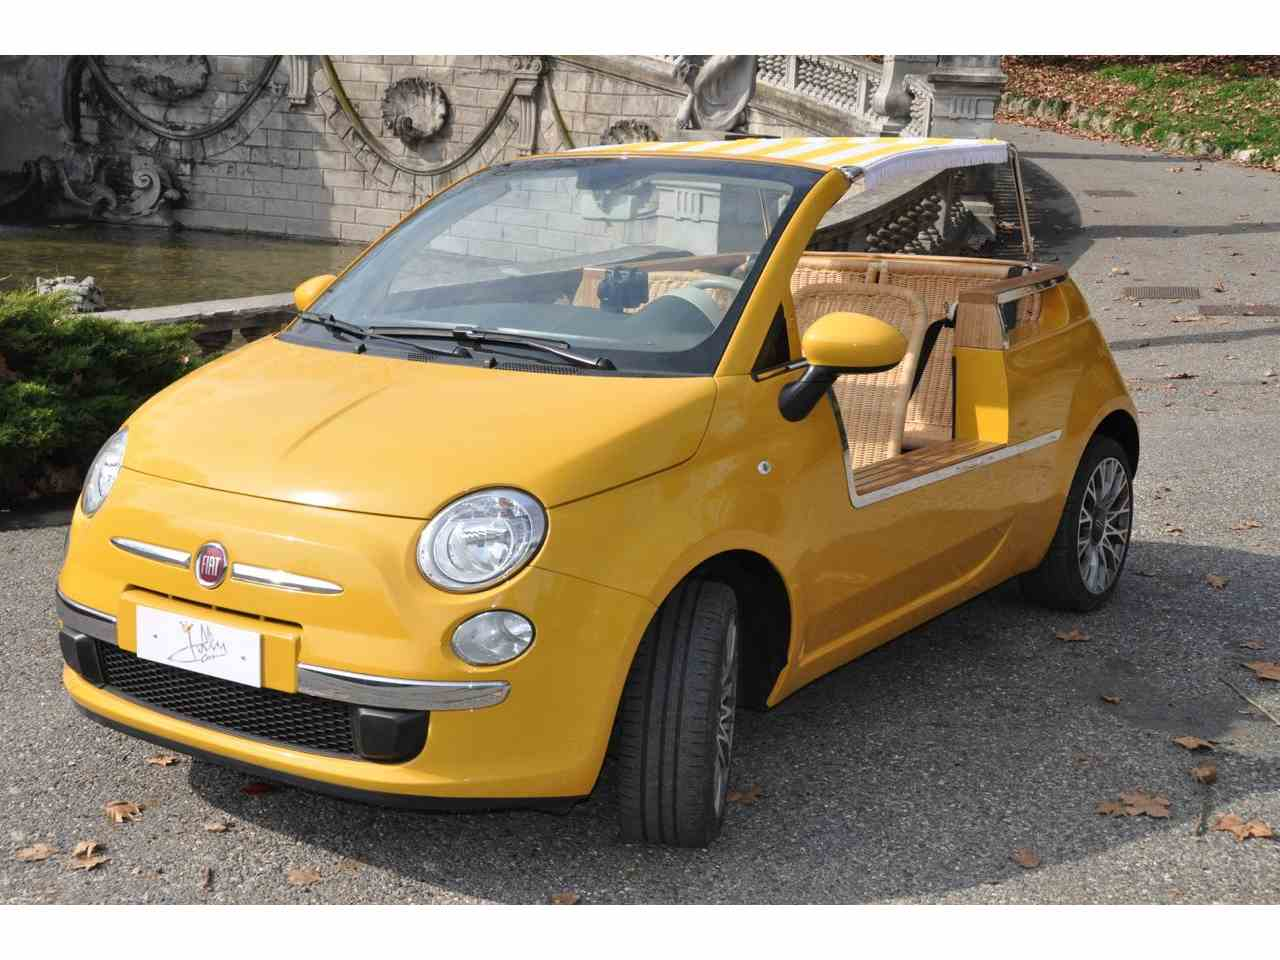 2015 fiat 500 for sale cc 908635. Black Bedroom Furniture Sets. Home Design Ideas